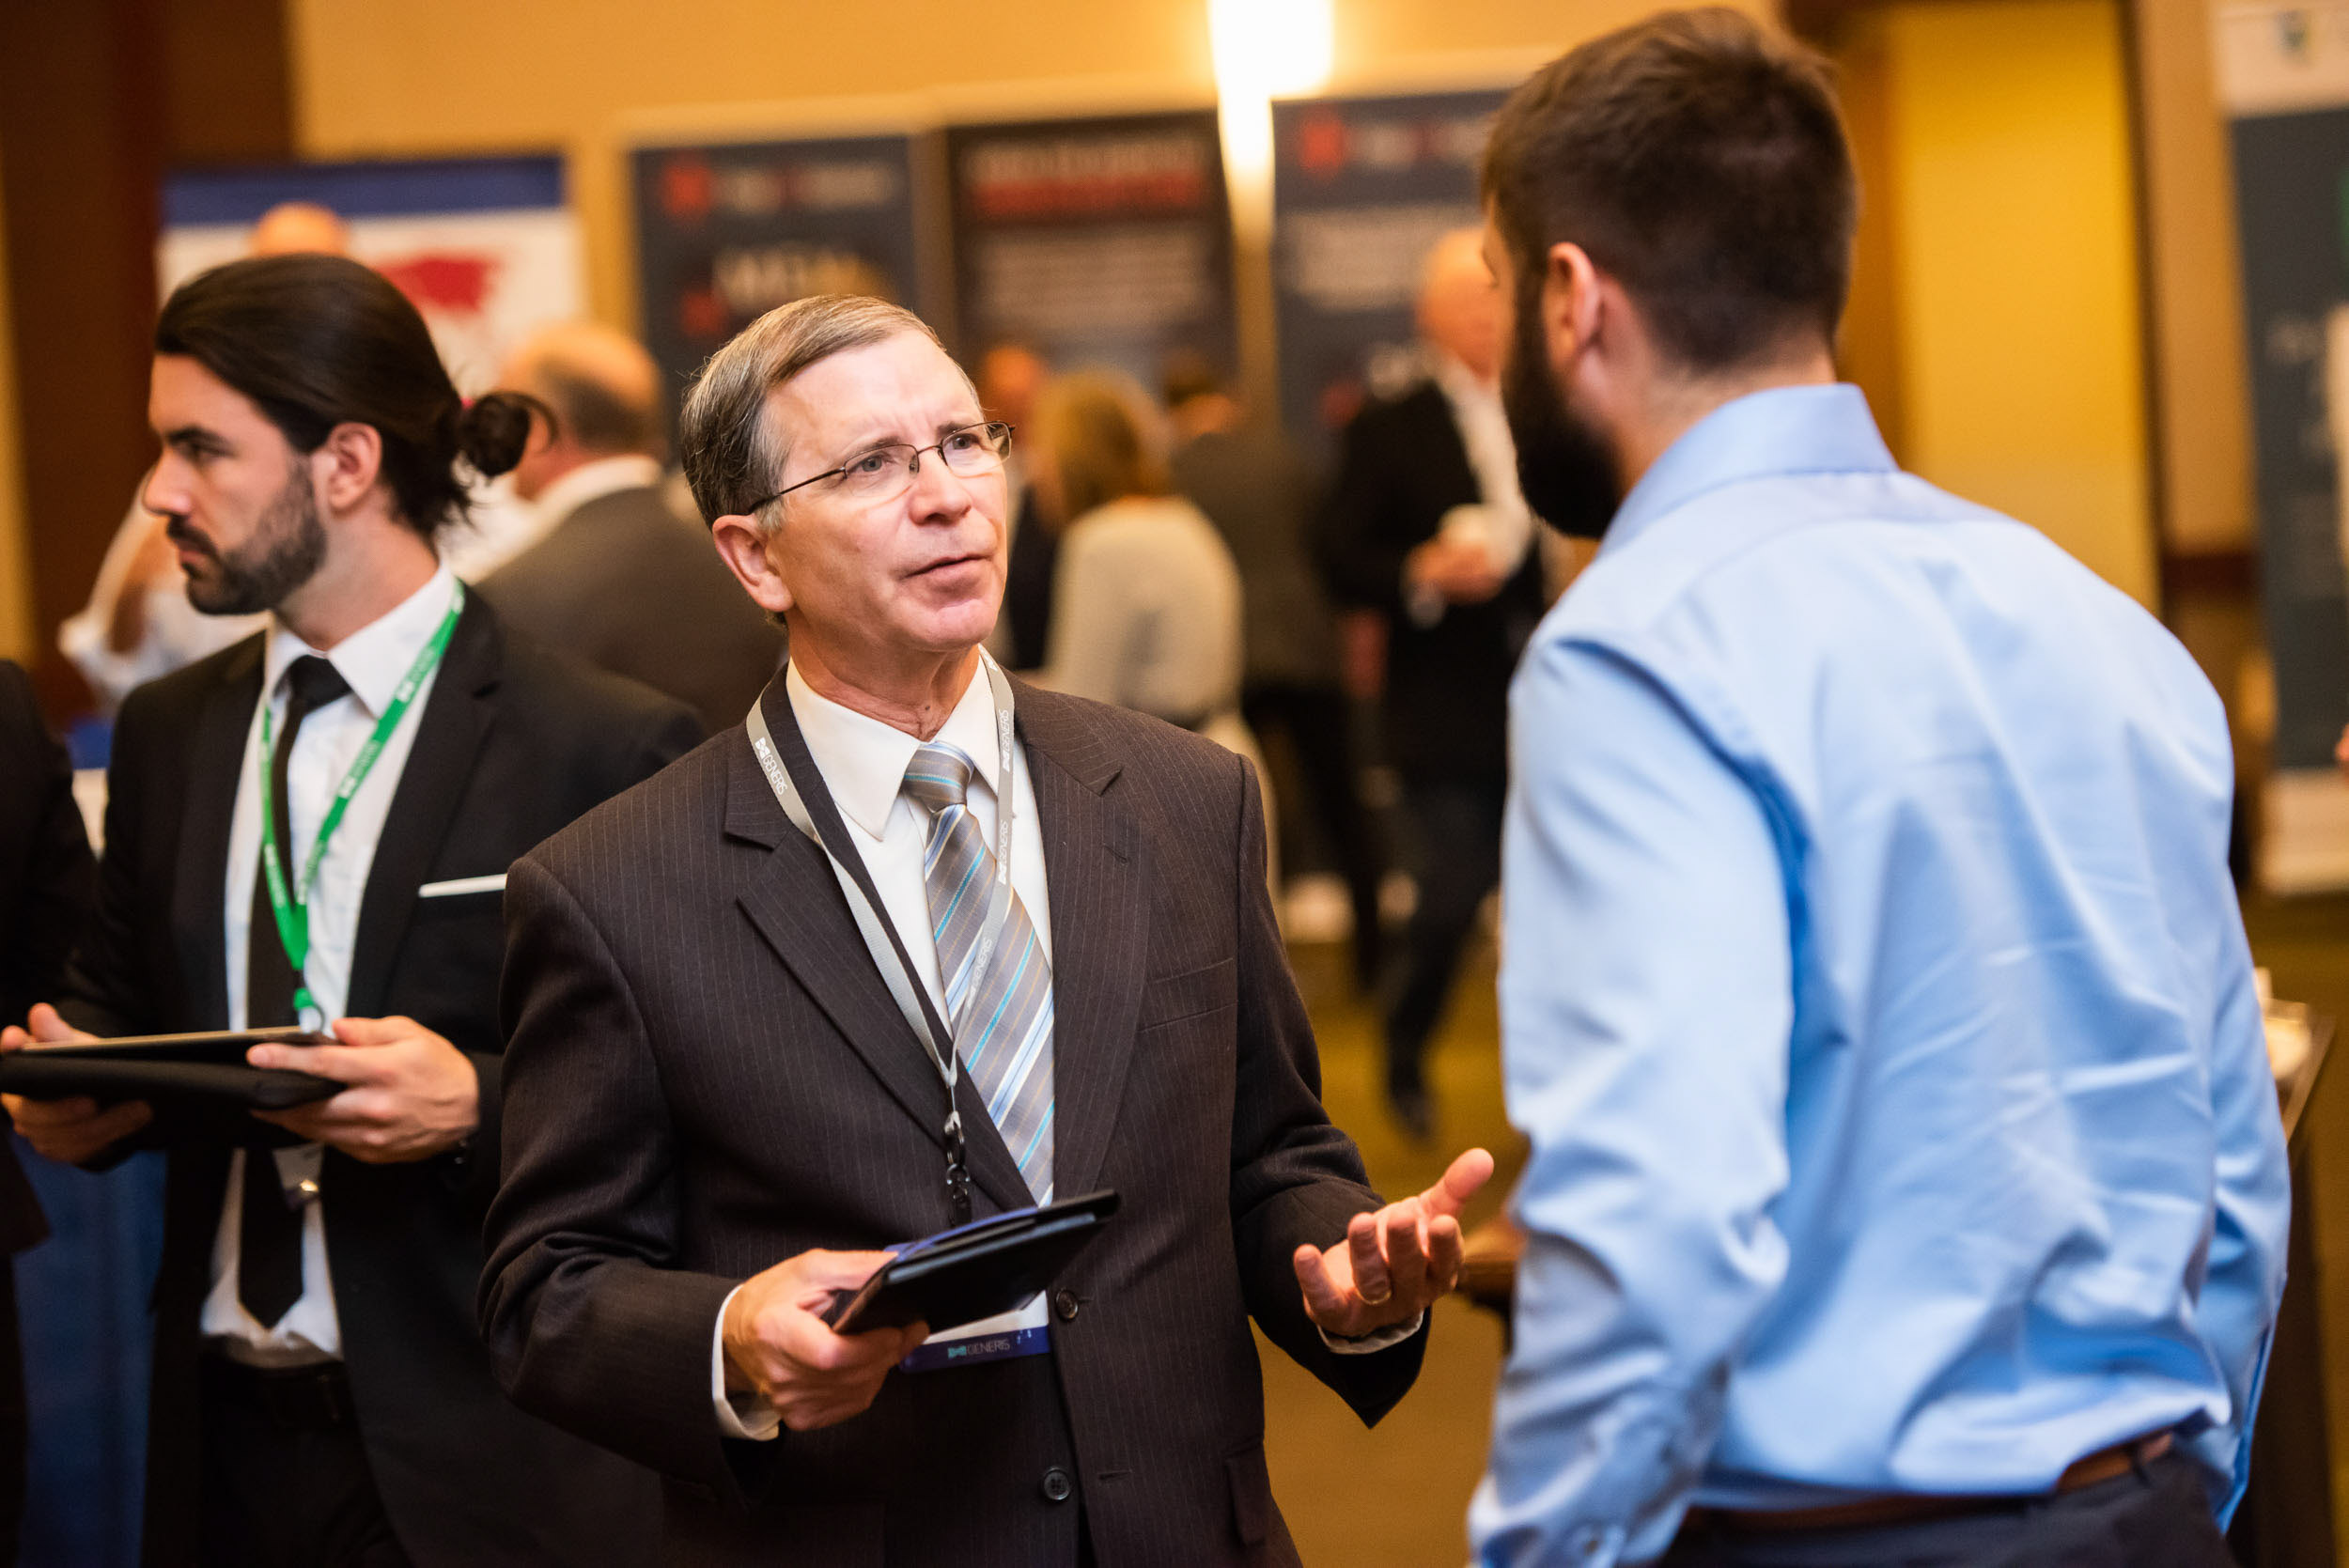 181024 - American Medical Device Summit - mark campbell photography-99_Resized_Resized.jpg